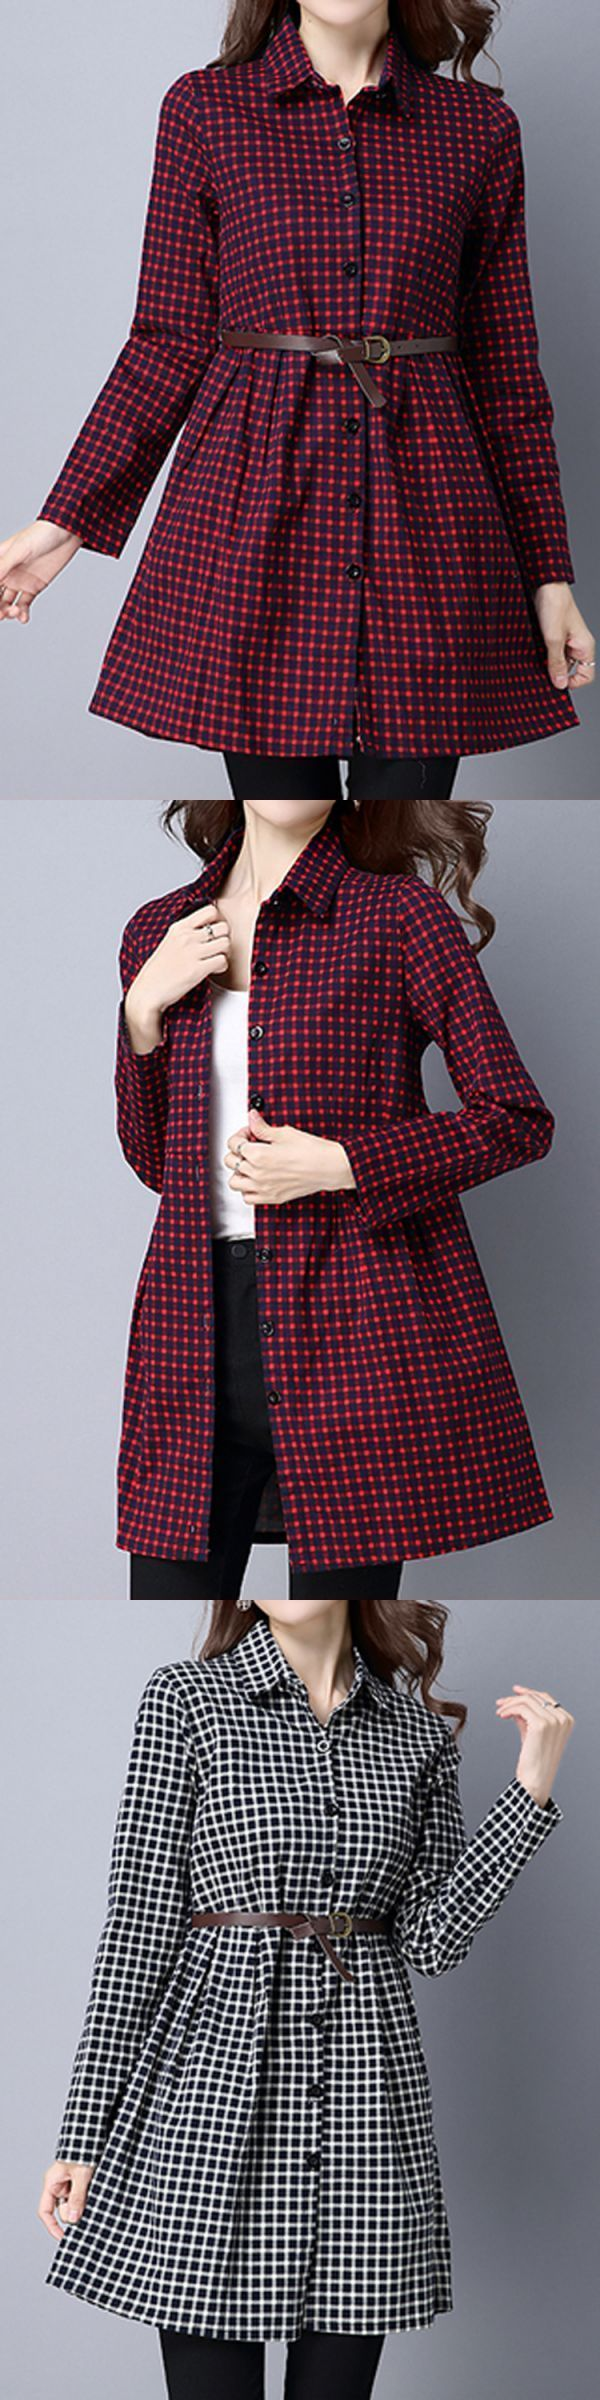 Casual dress youtube plaid lapel long sleeve belt women elegant shirt dress #casual #dresses #bodycon #casual #dresses #for #30 #year #olds #casual #dresses #next #day #delivery #casual #dresses #singapore